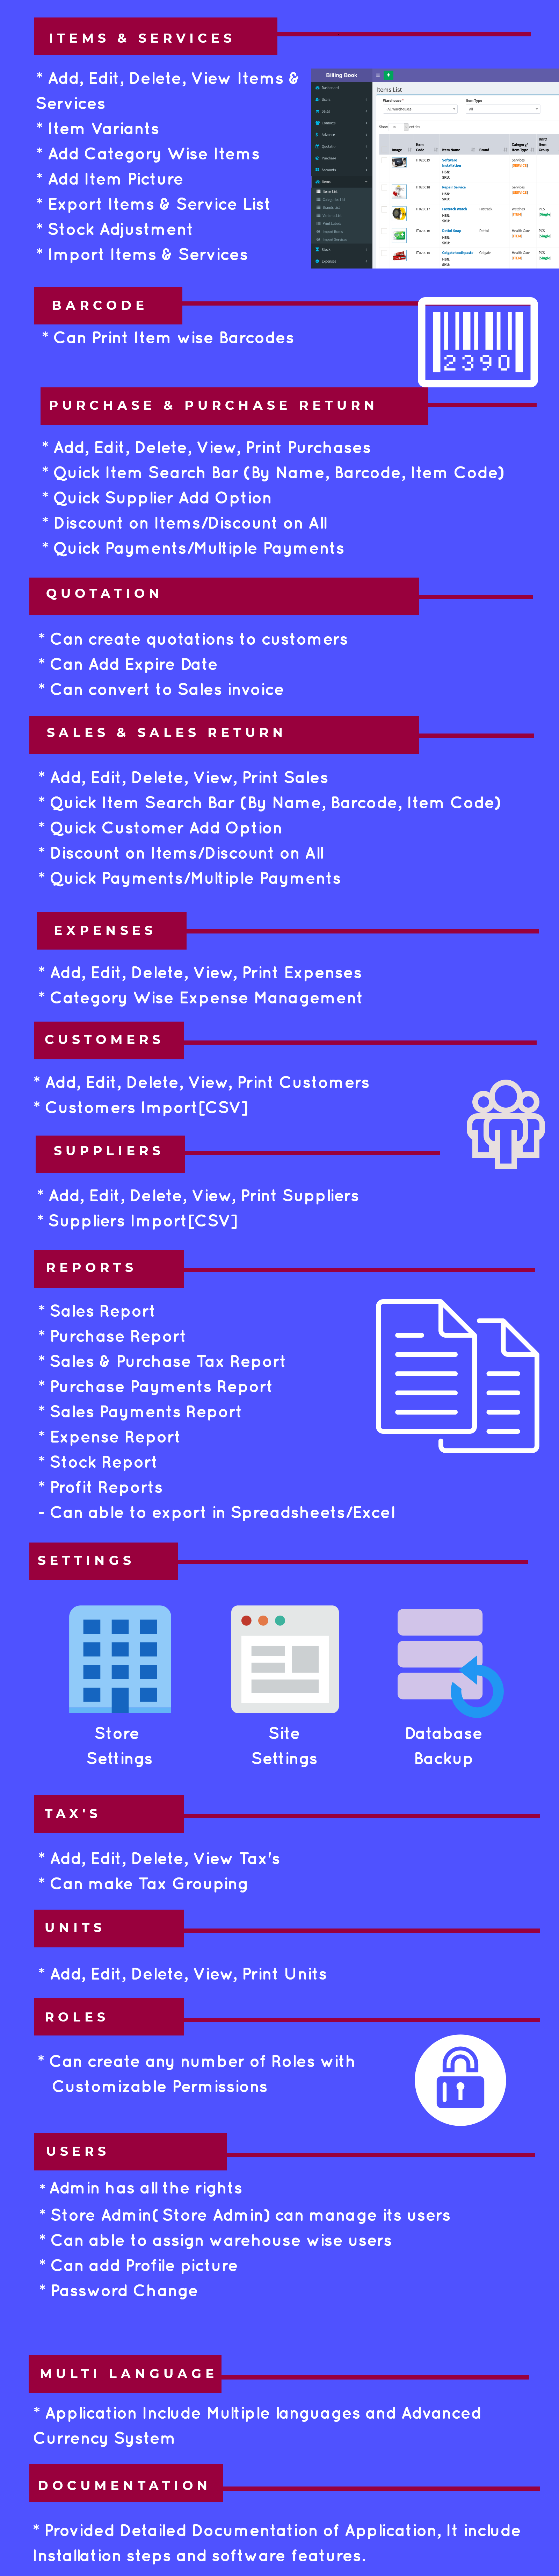 Billing Book -Ultimate Inventory management & Billing Software with POS - 2